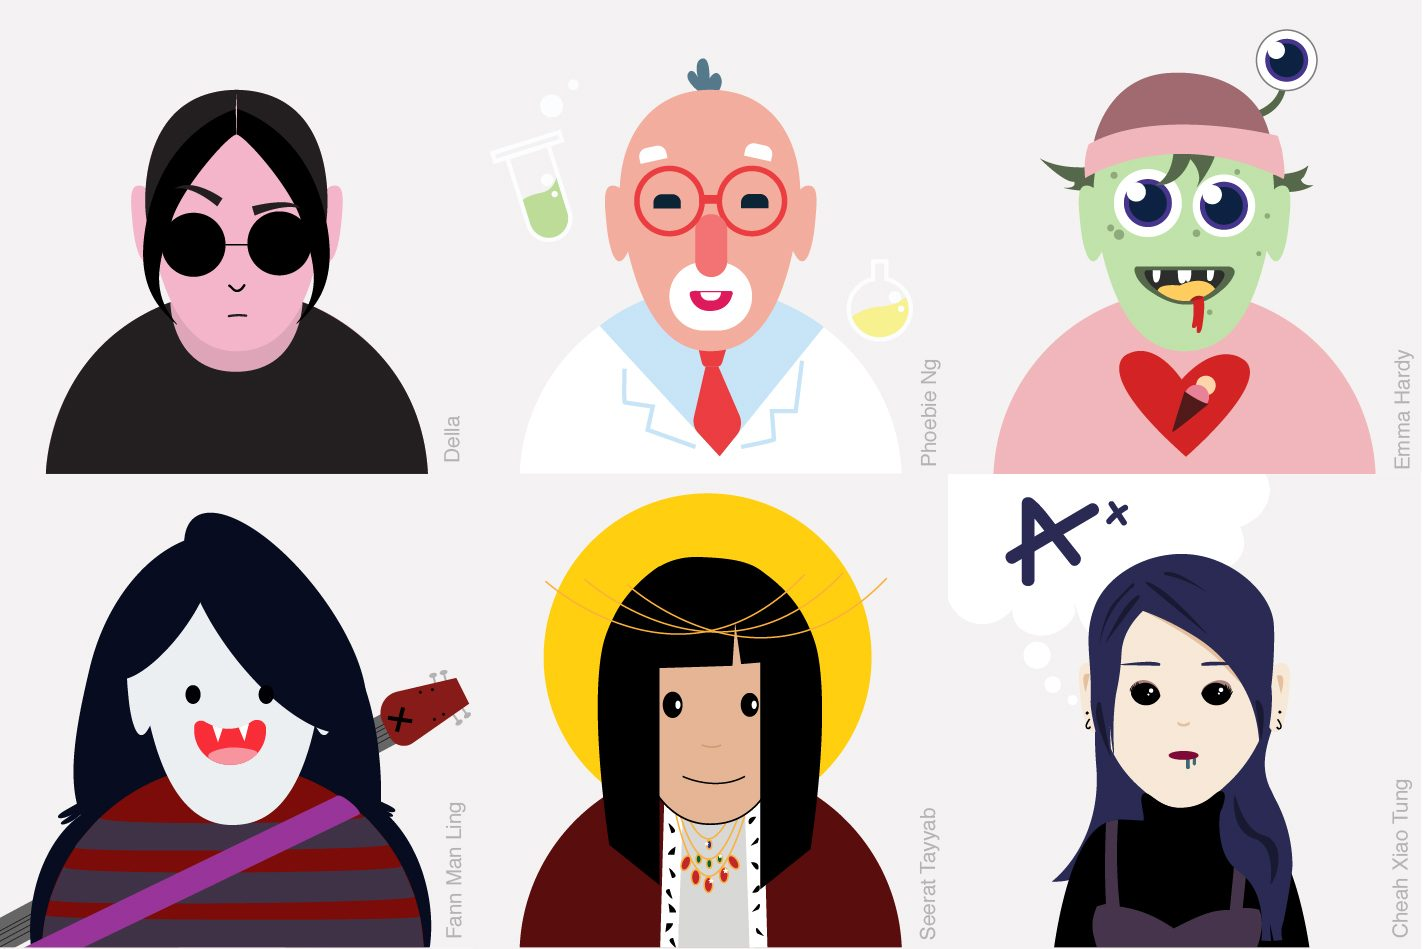 Graphically created personas